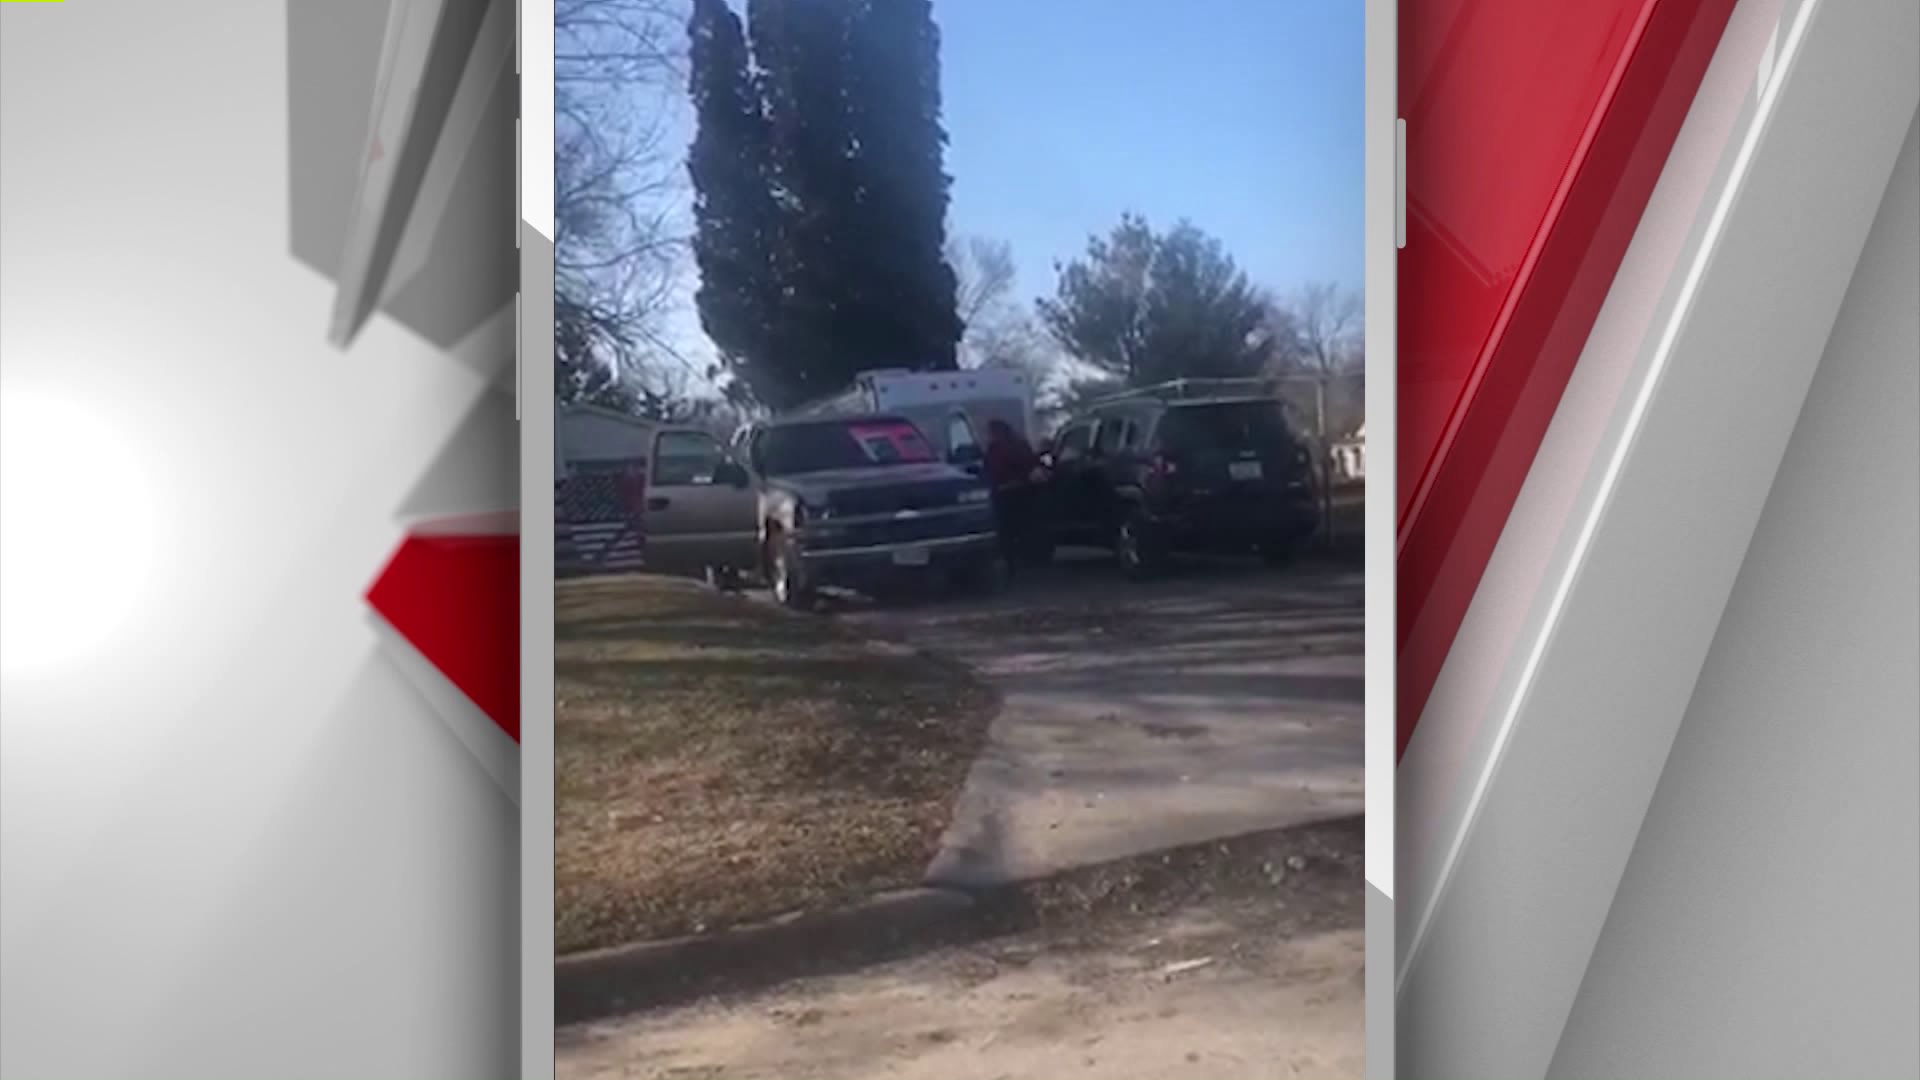 Protest Against Nazi Imagery Sparks Confrontation Outside Des Moines Home 1